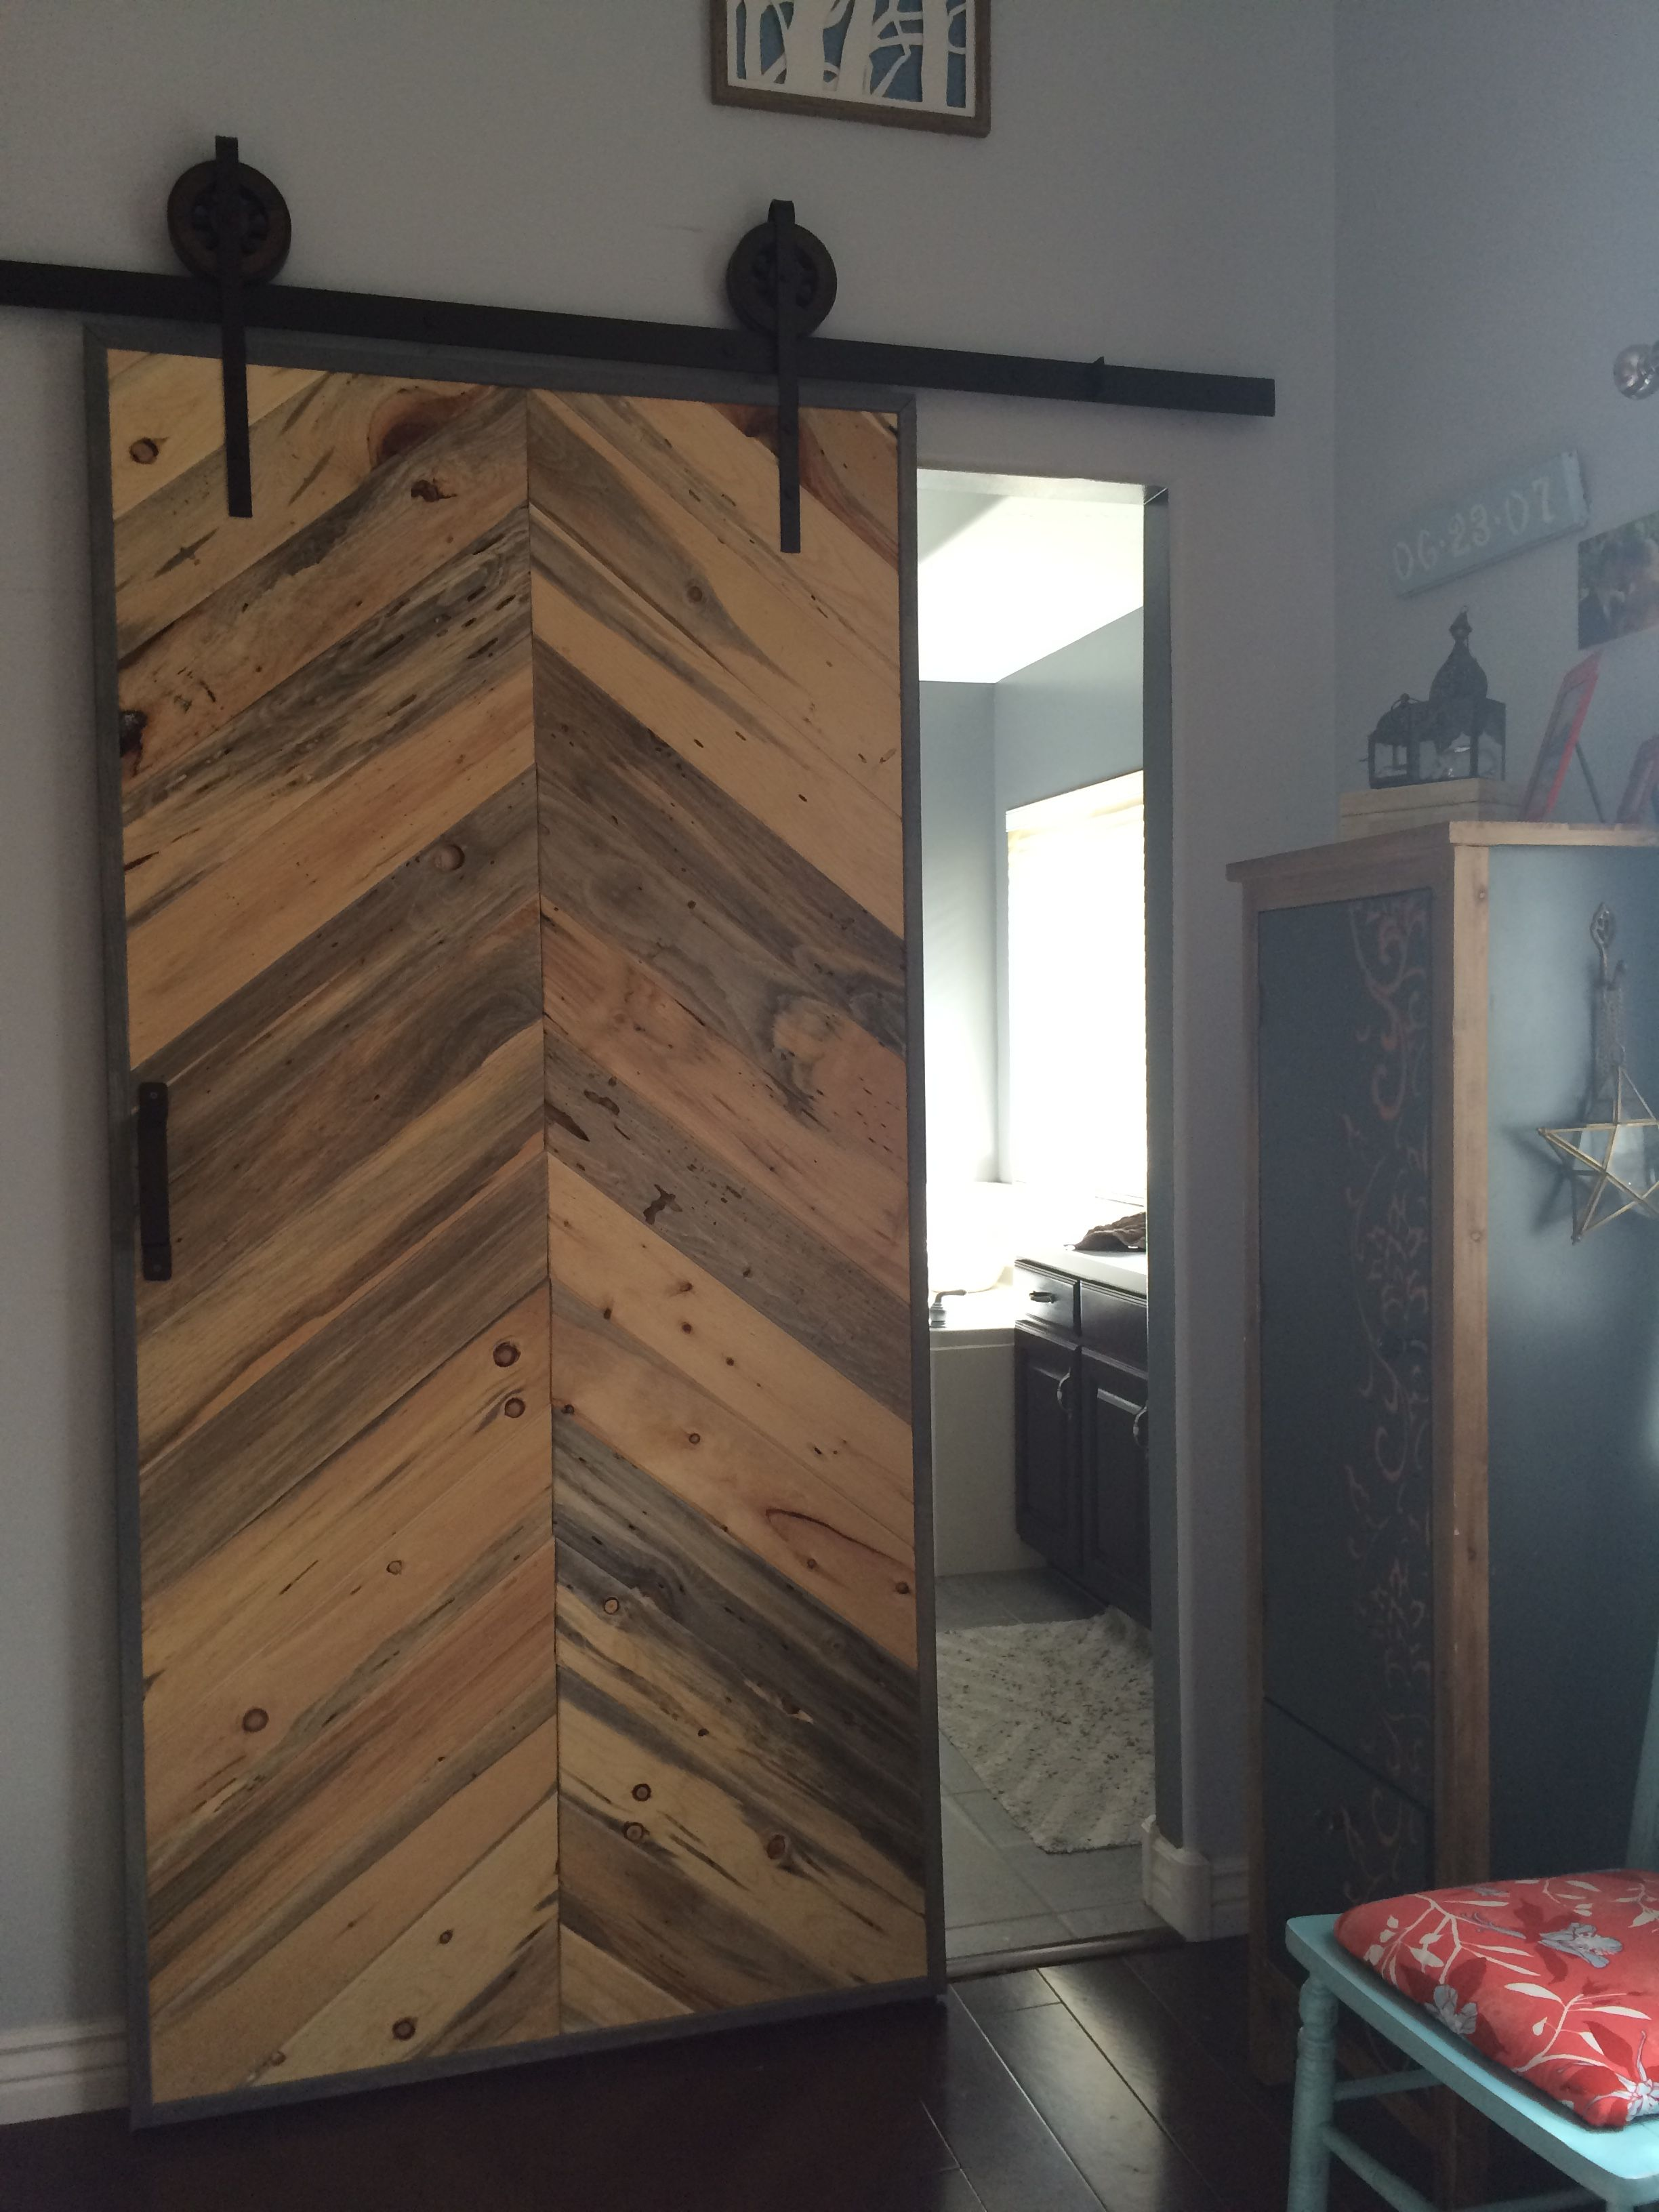 bro hand in crafted buchananfamilyarts made brown rich pine with custom buy sliding sawn a barn rough door finish by